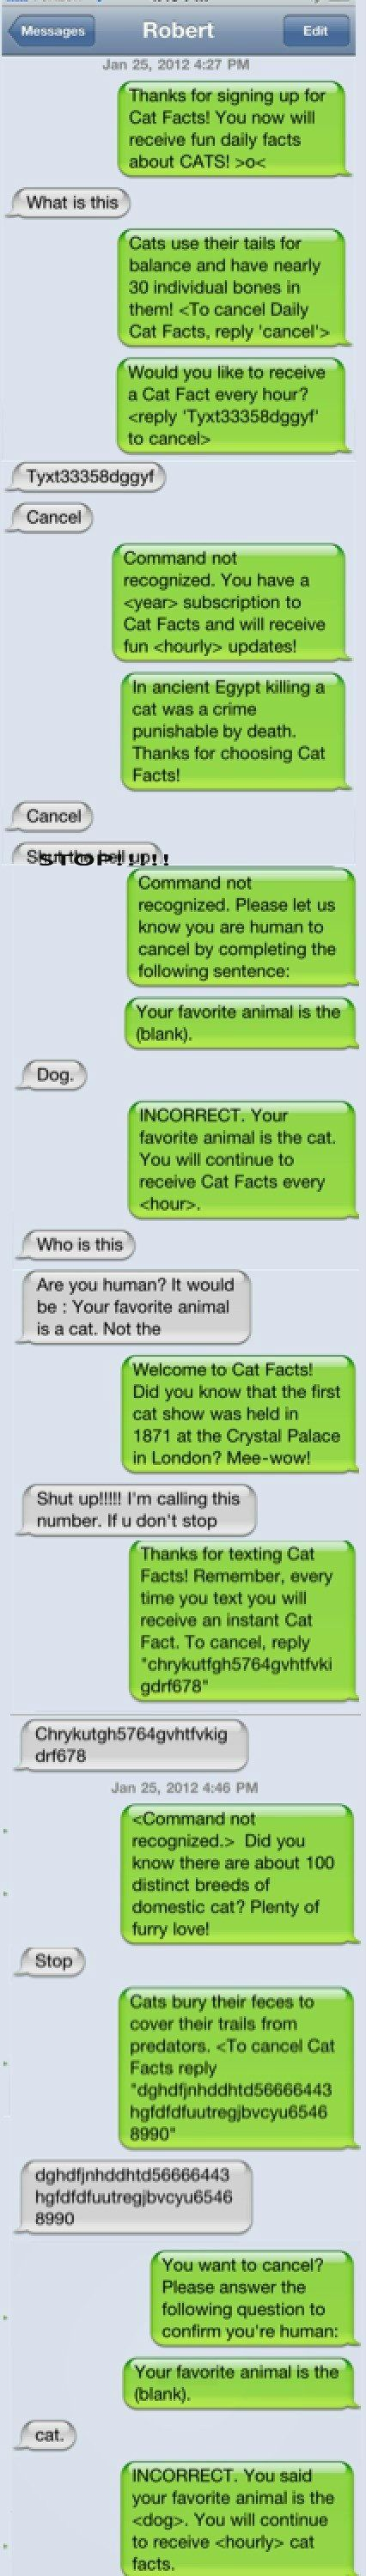 This would be the cruelest yet funniest prank ever. XD - more funny things…